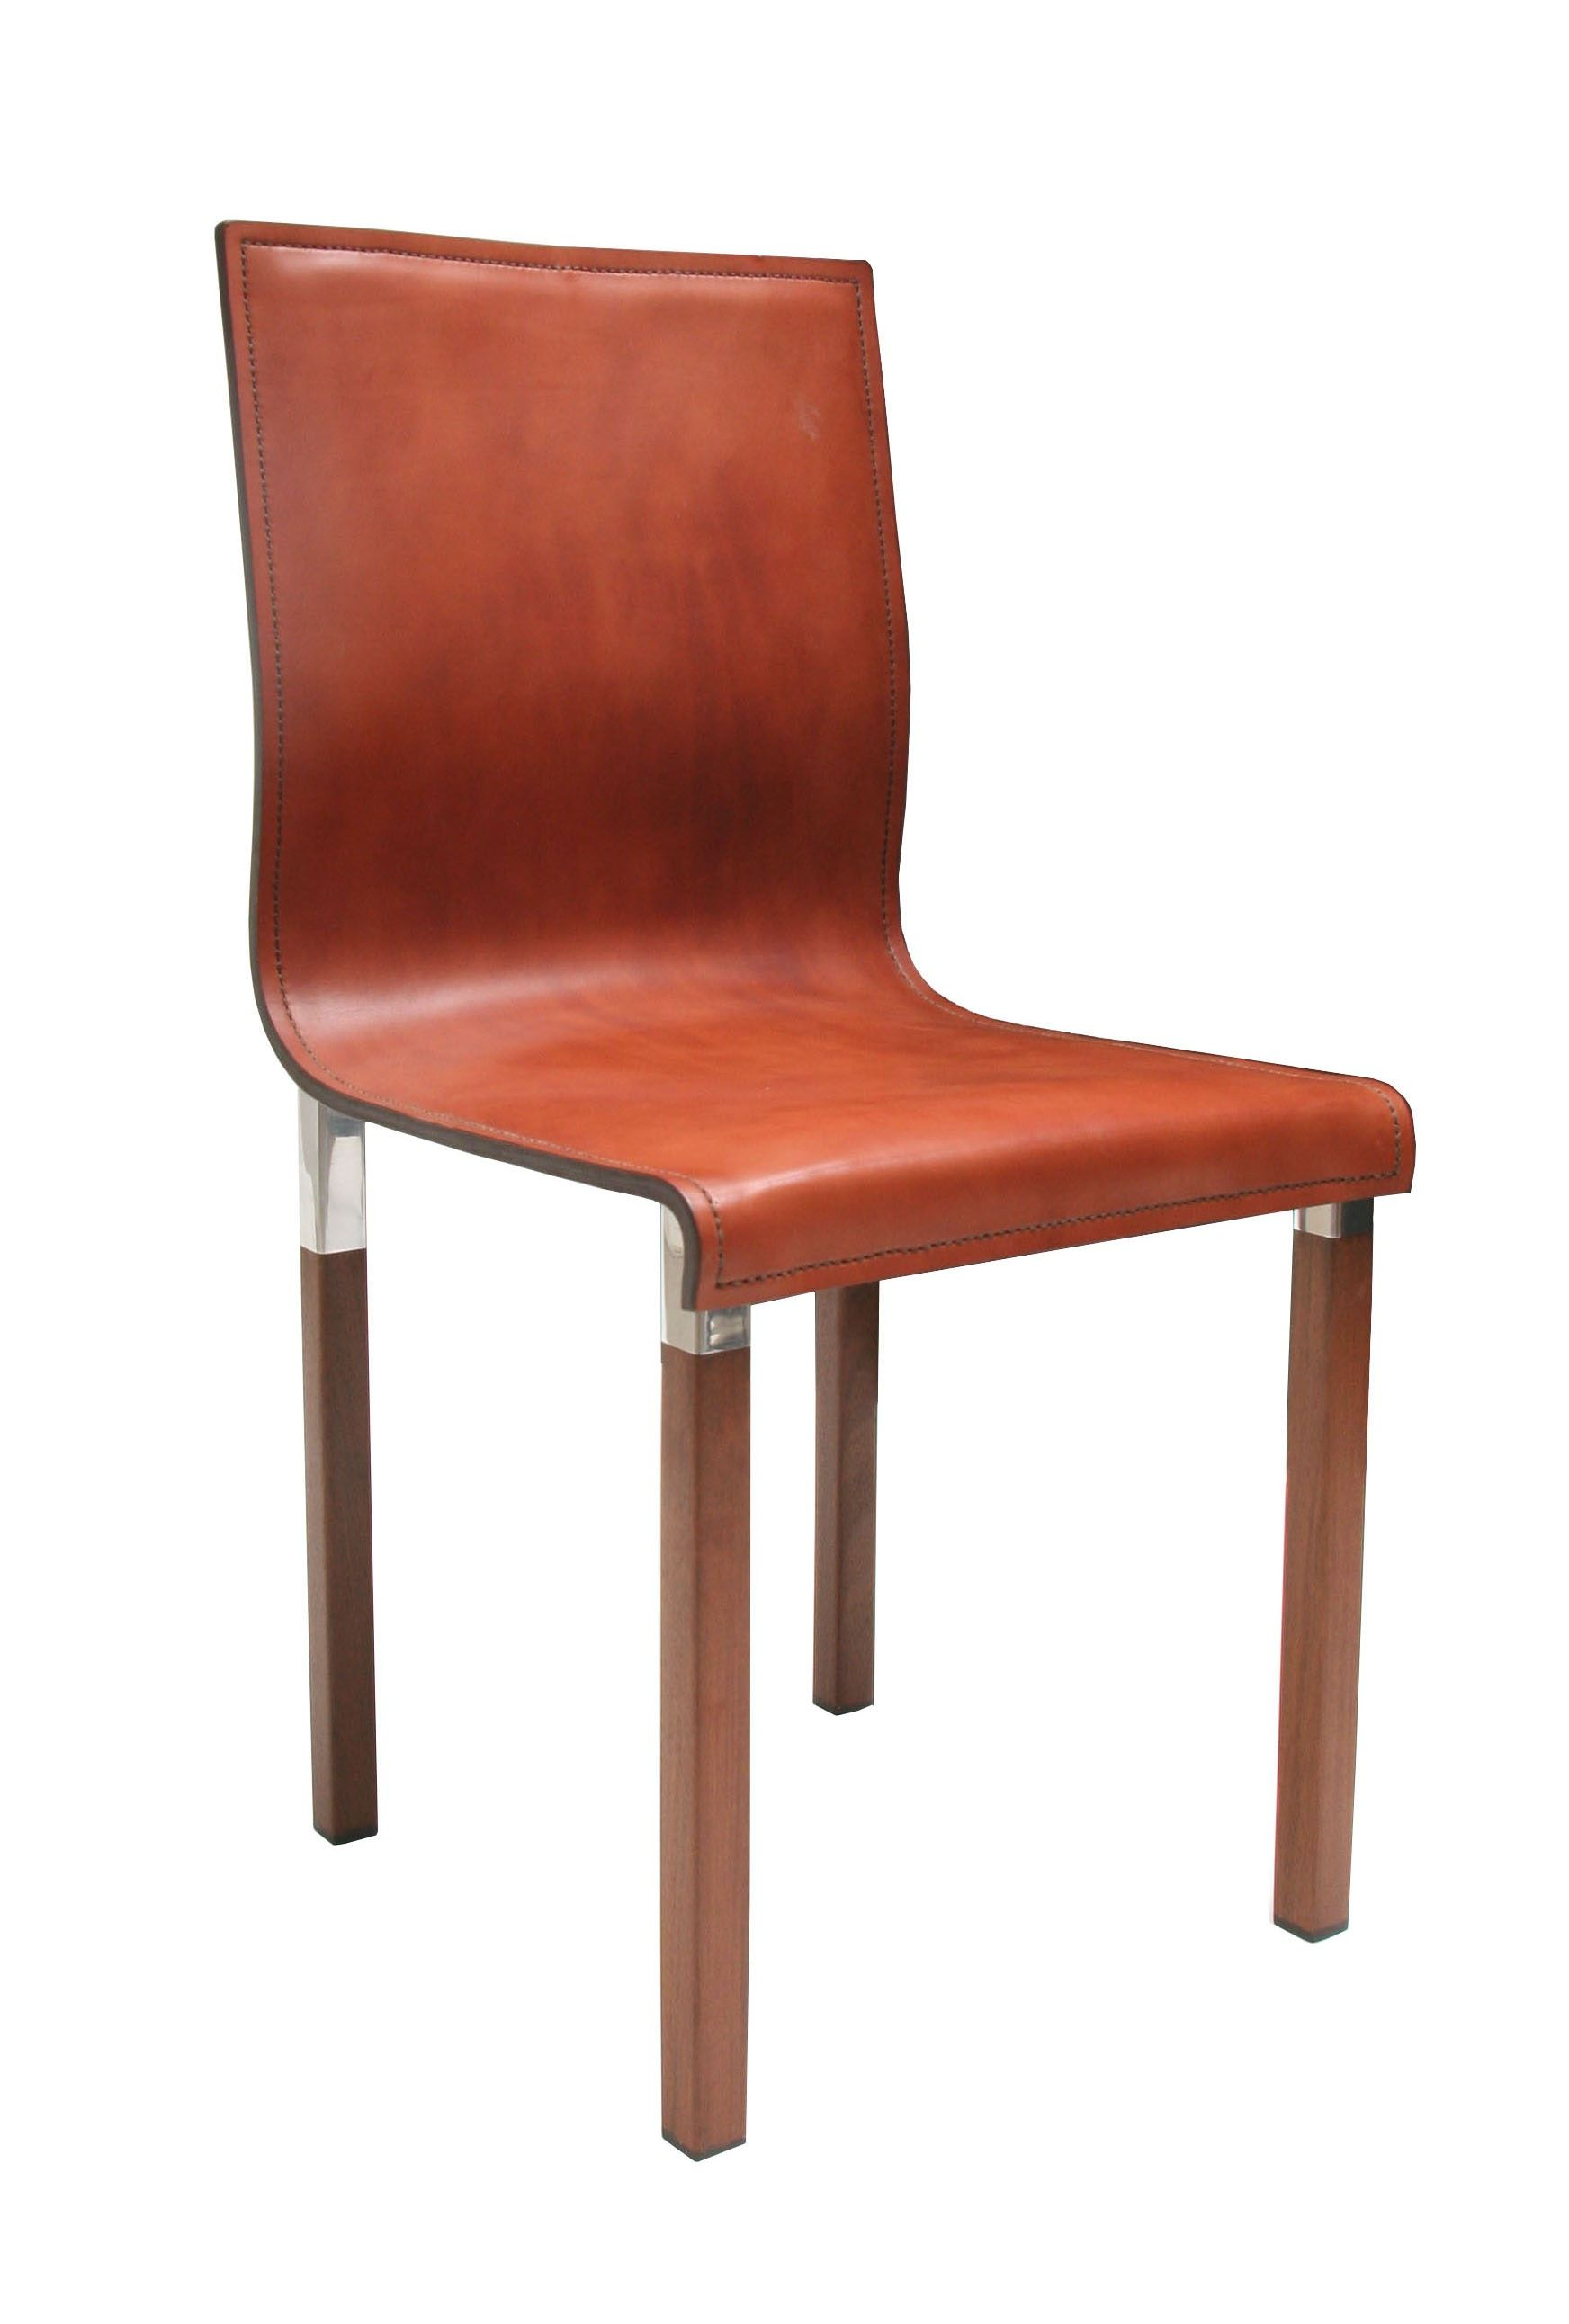 Buy emile leather dining chair by zele company made to order designer furniture from dering halls collection of mid century modern dining chairs